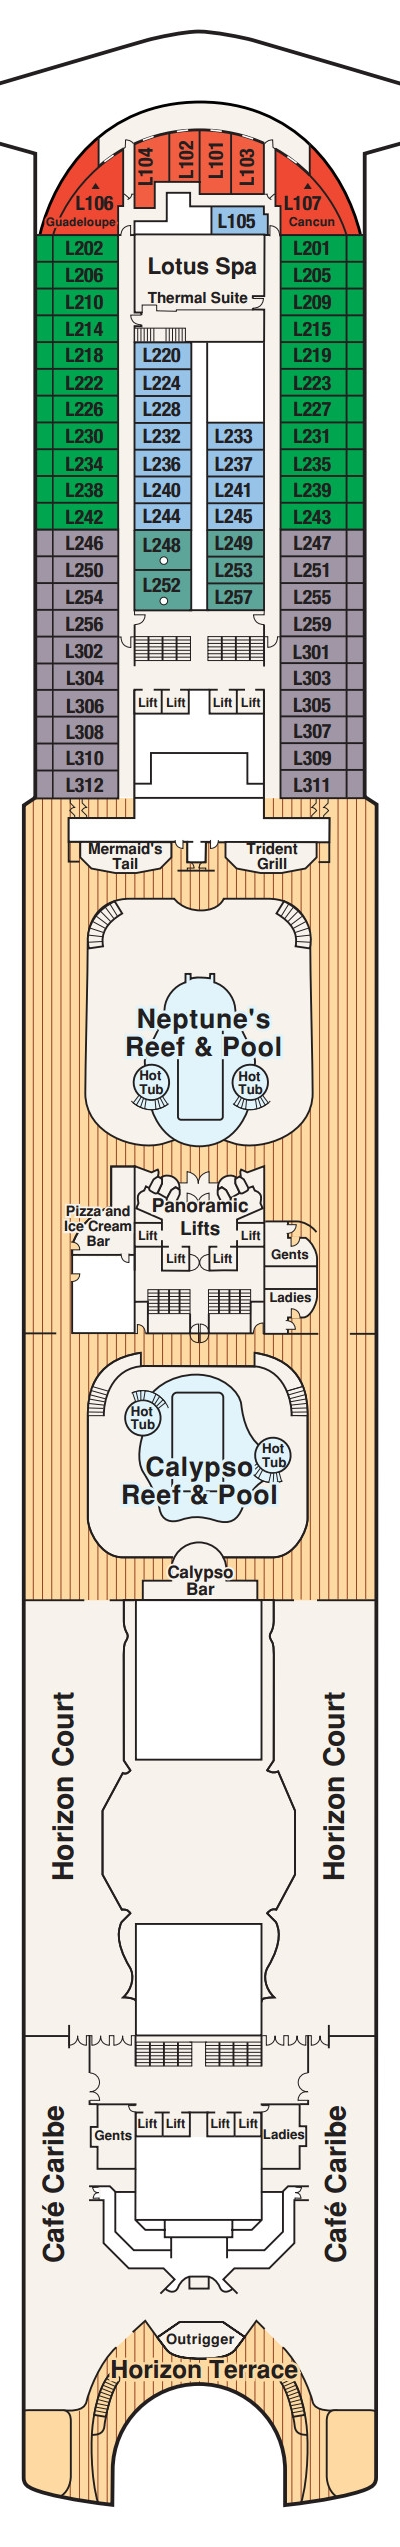 Crown Princess Lido Deck 15 layout